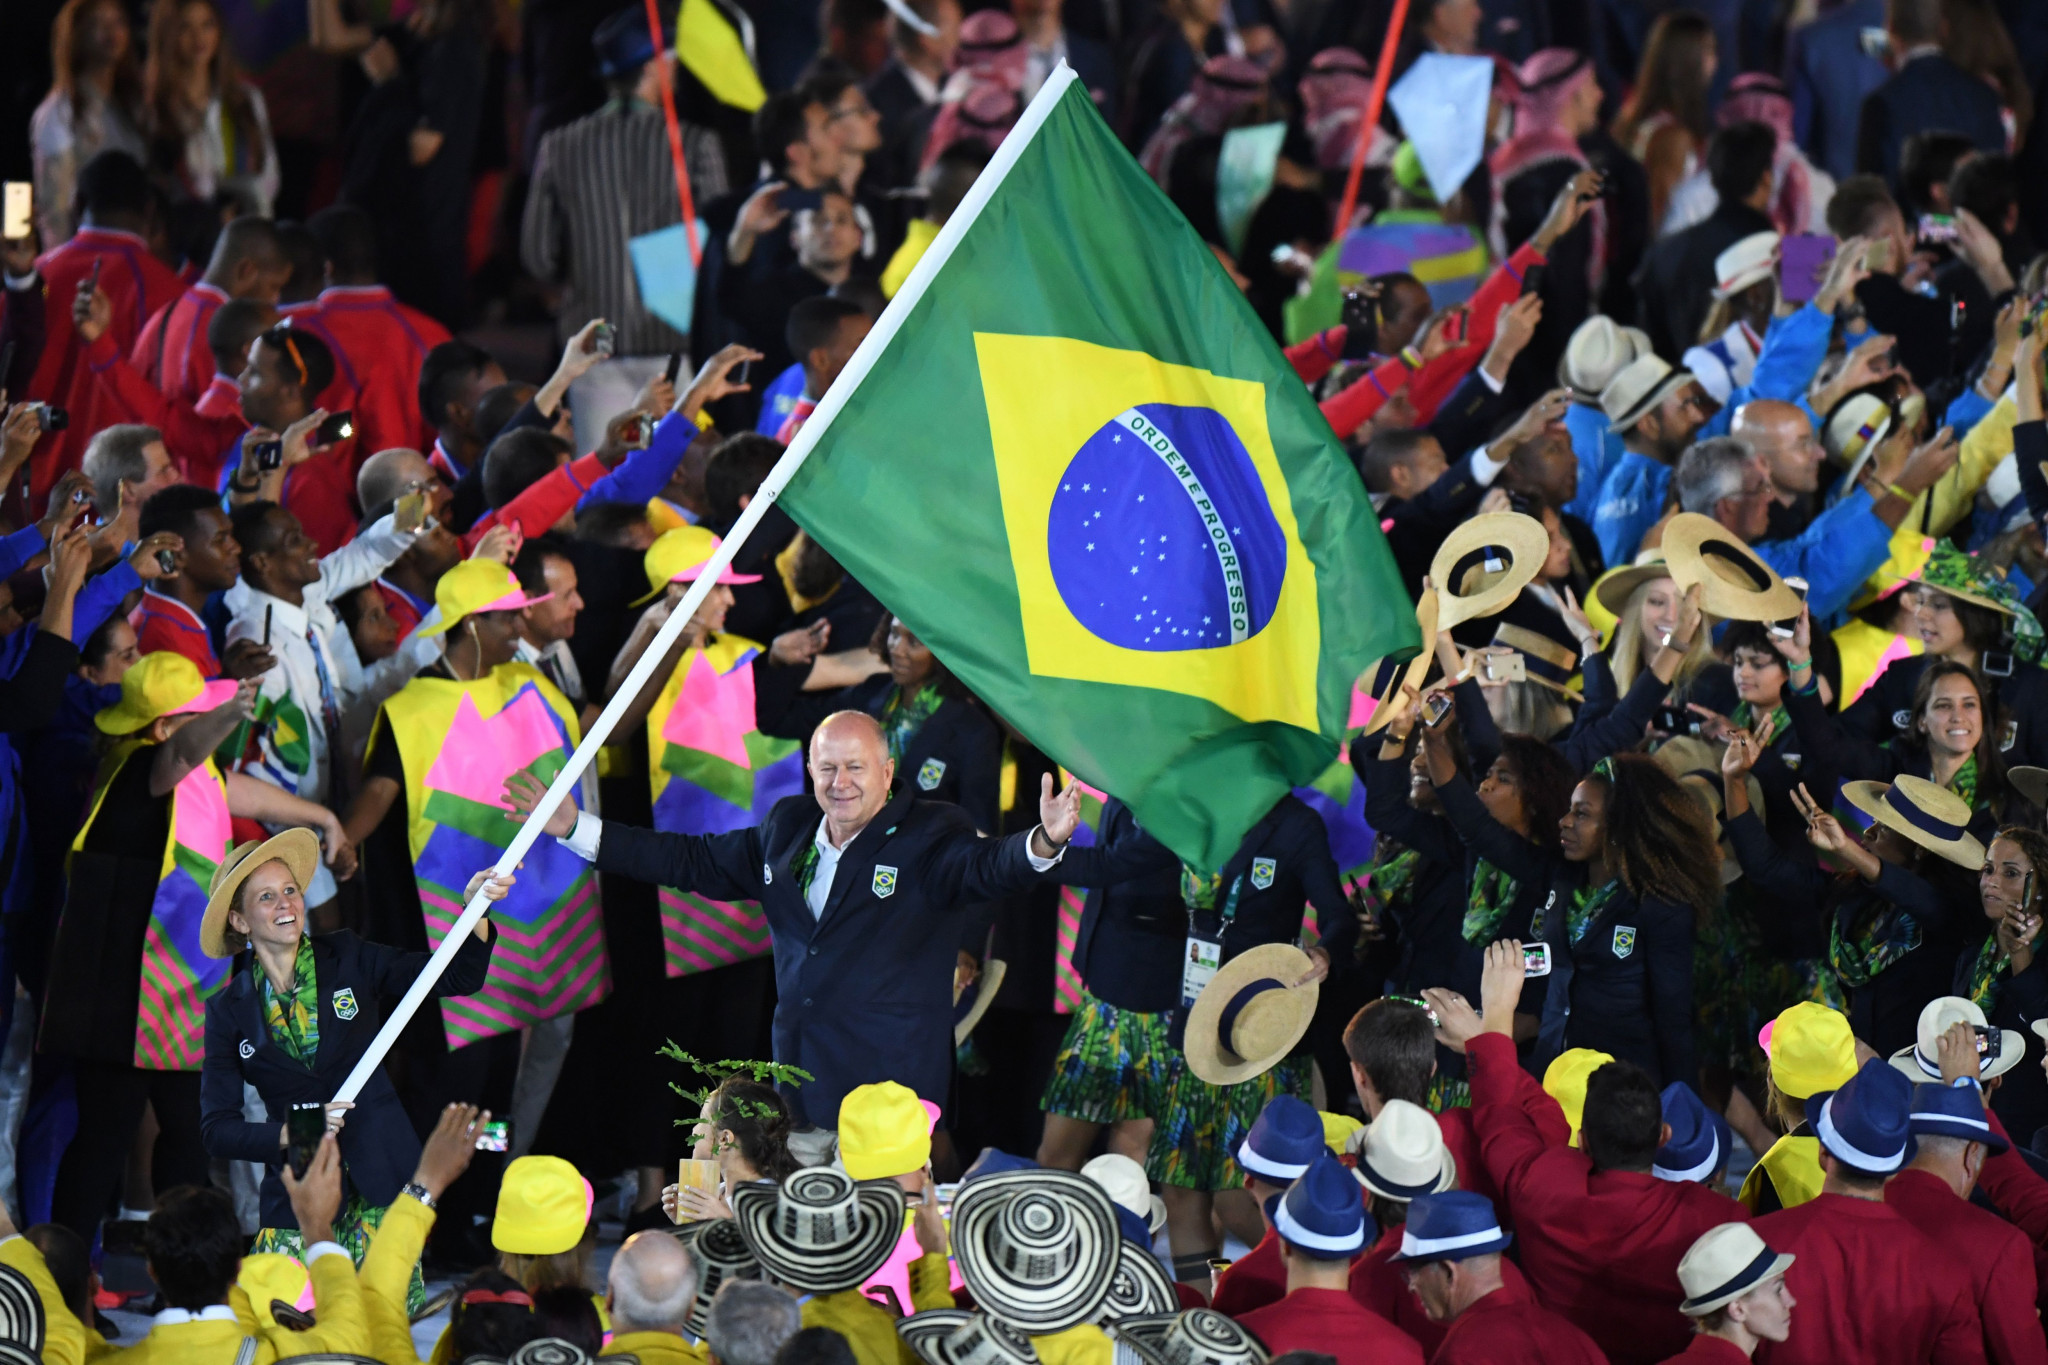 Brazilian athletes should still be able to march and compete under their own flag at Pyeongchang 2018 ©Getty Images